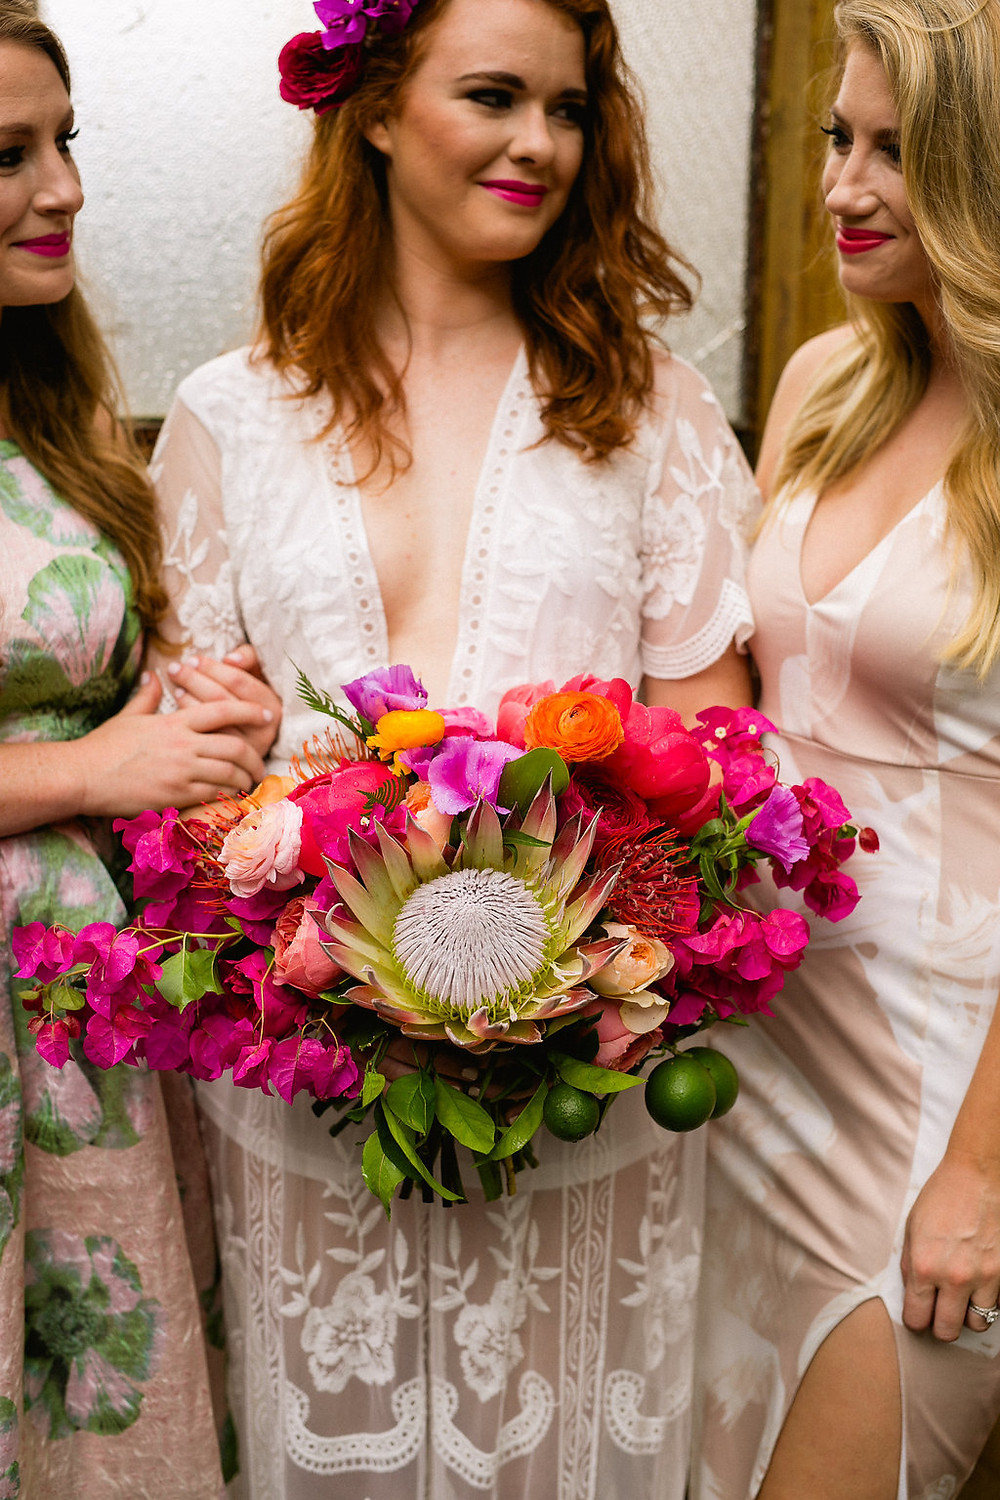 Tropical Bridal Brunch at Race & Religious | Sarah Becker Photography, Antigue Florals, Logan Doerries Designs & Lovegood Wedding & Event Rentals